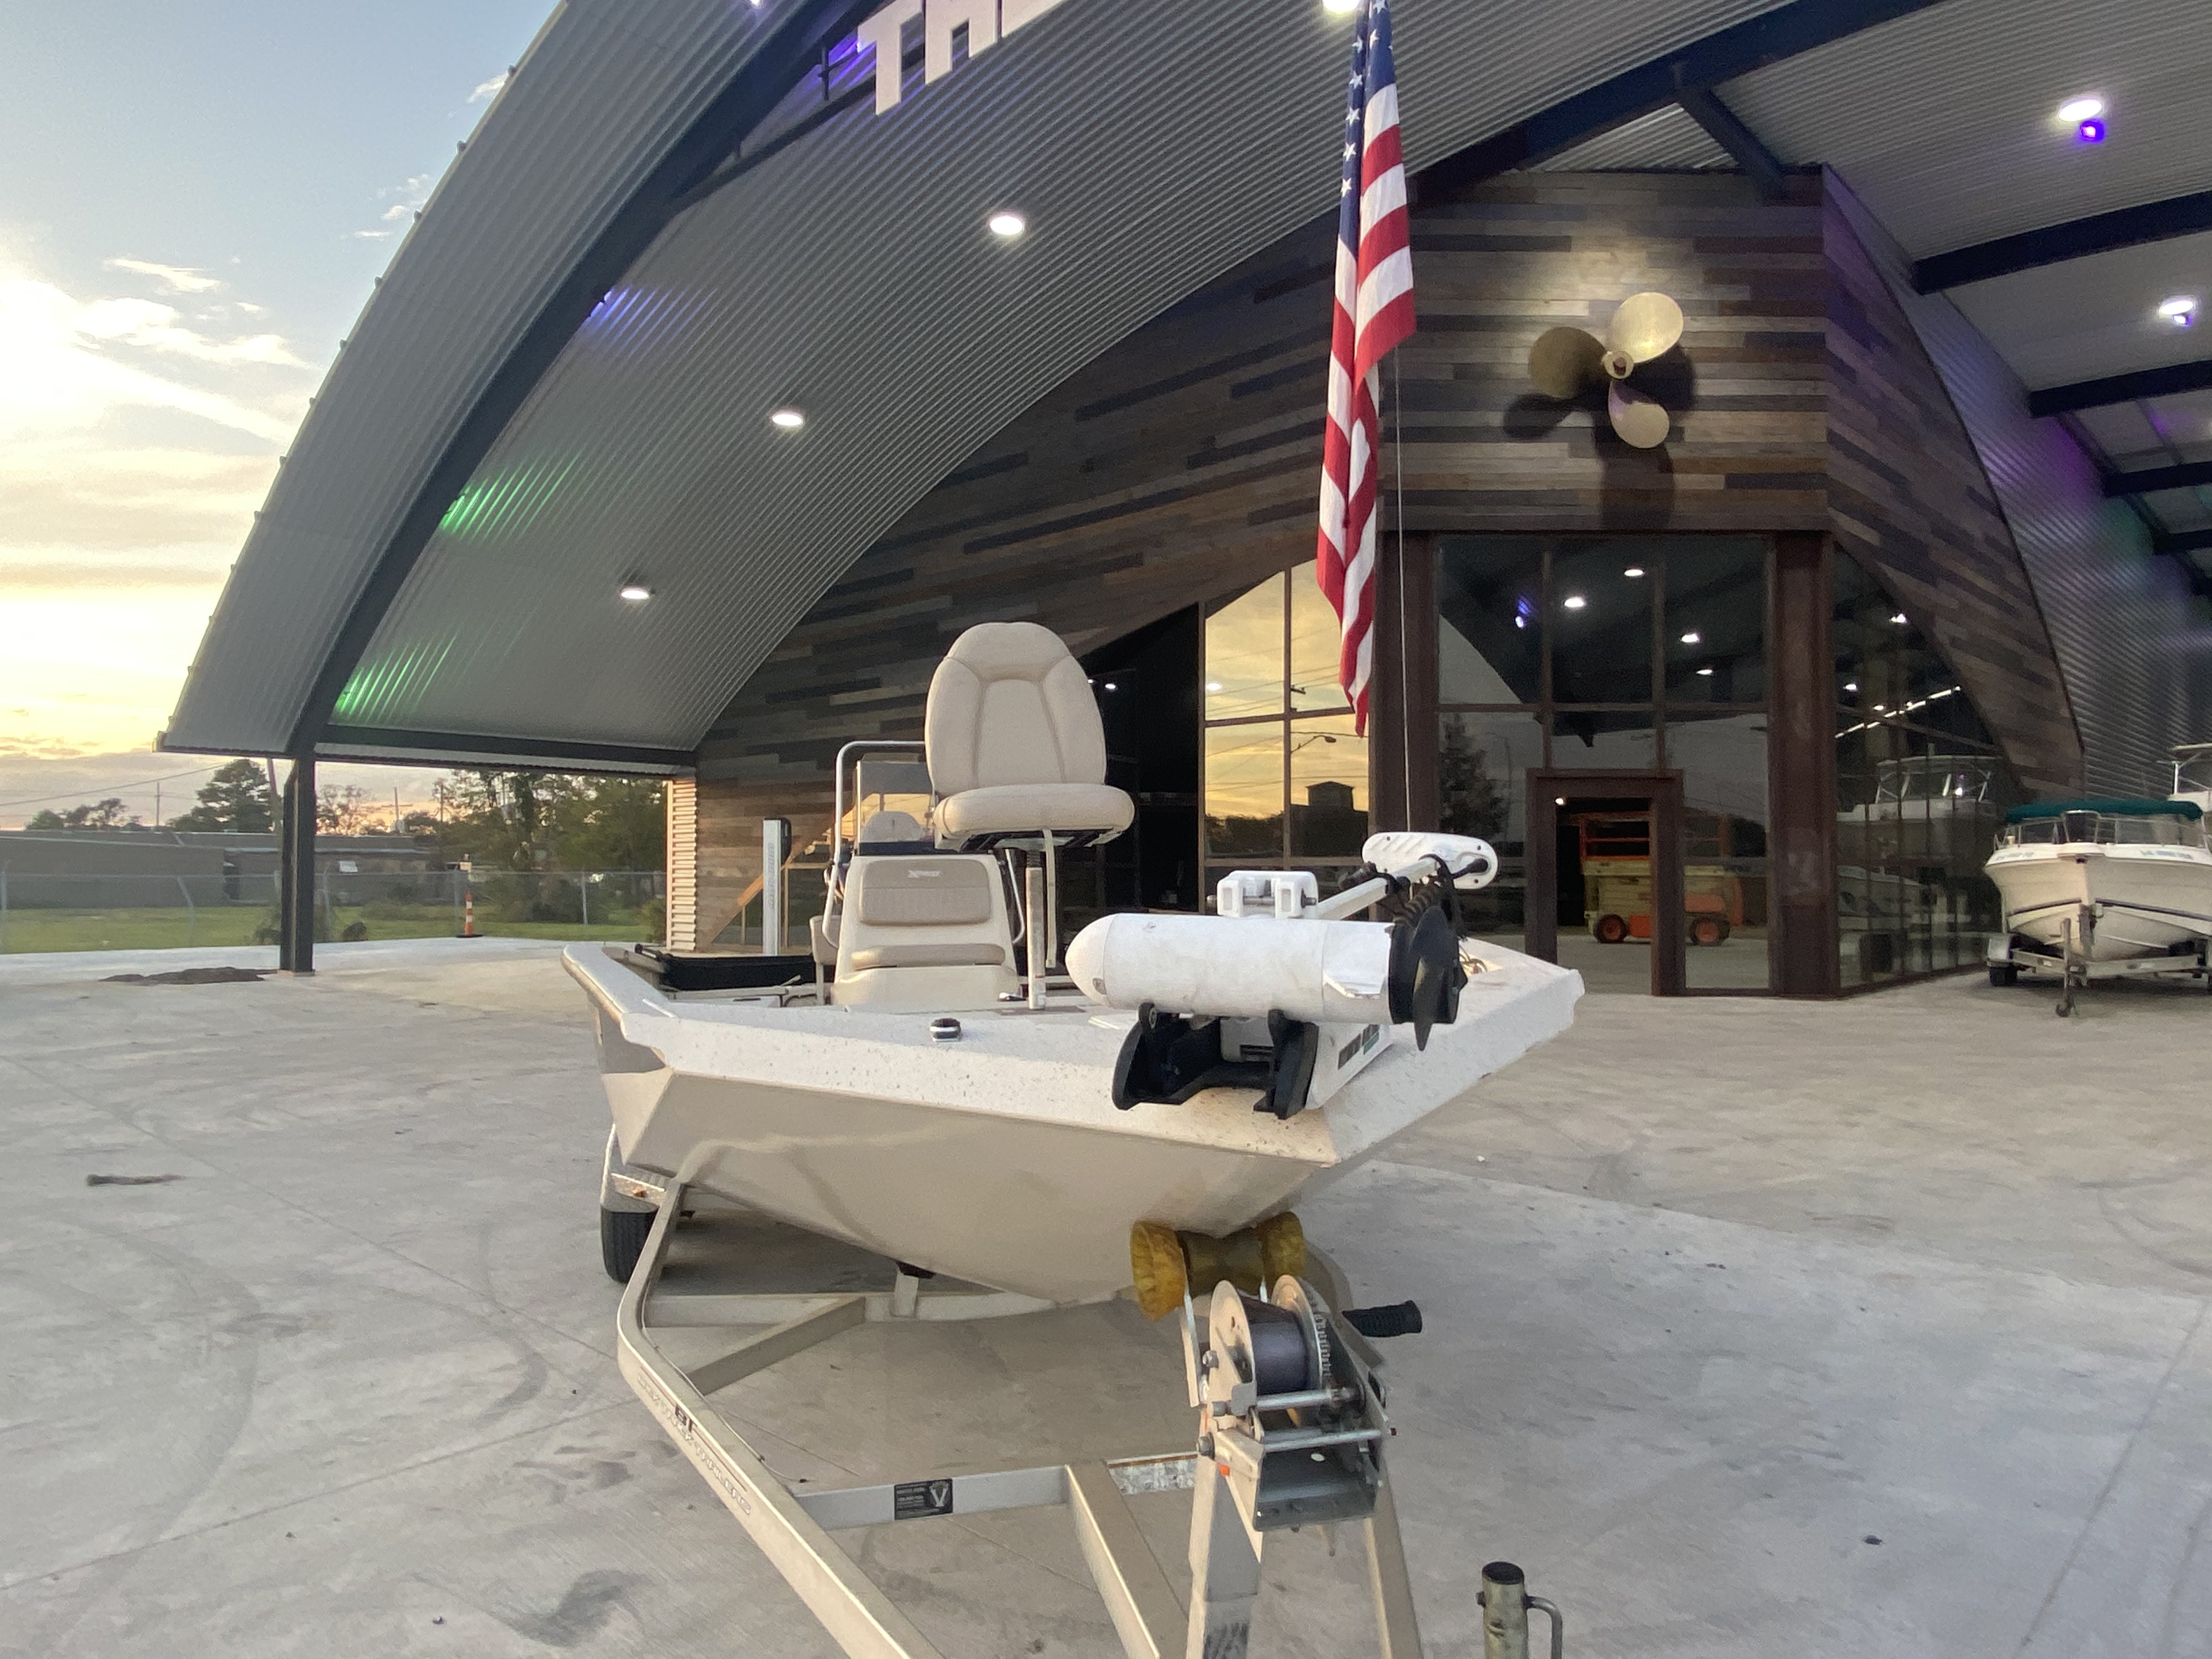 2012 Xpress boat for sale, model of the boat is H24B & Image # 14 of 17